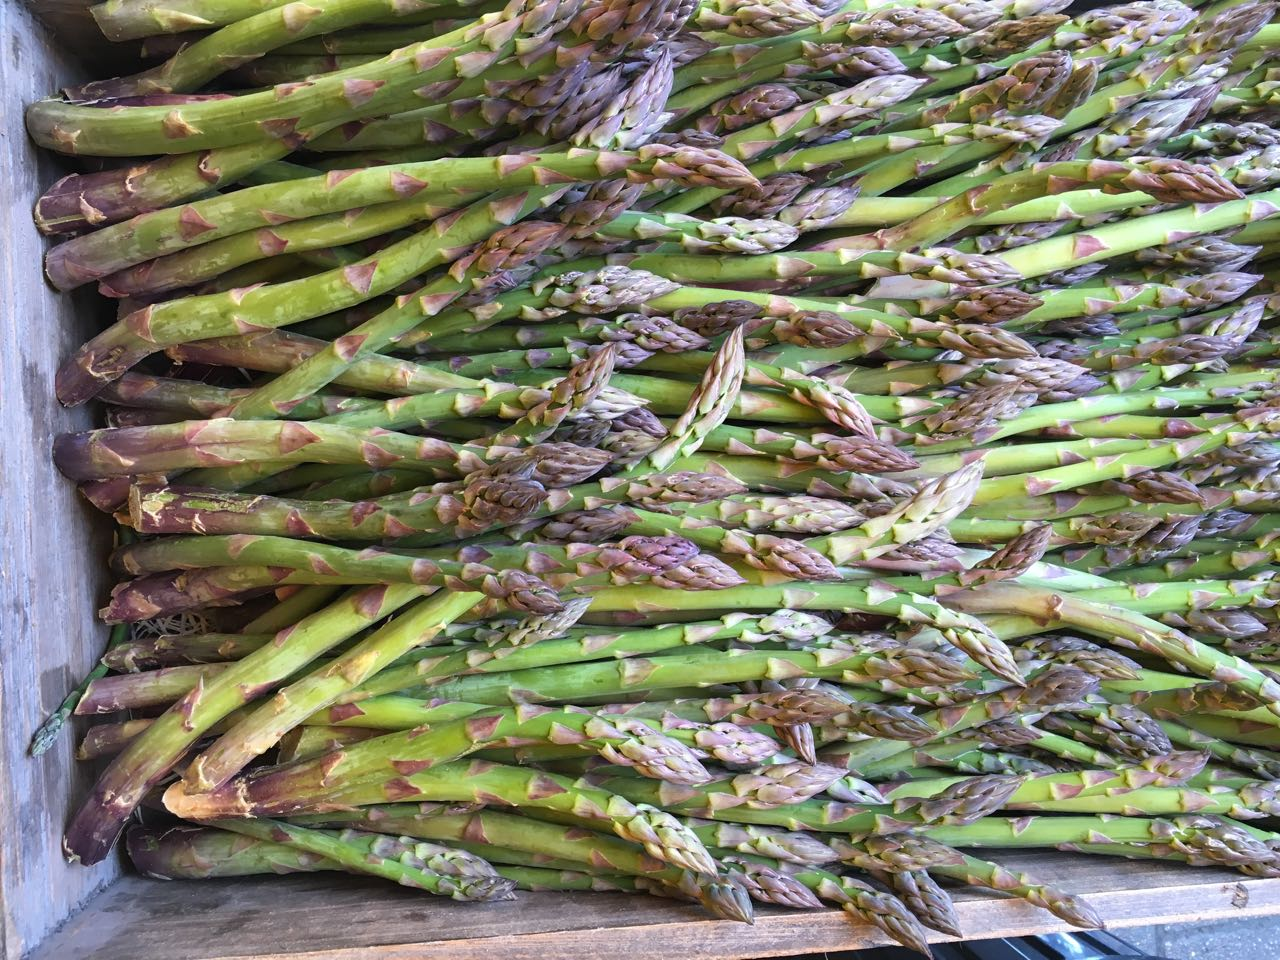 English Asparagus     Photo ©Evie Saffron Strands       MAY       This time last year we were talking of having had English Asparagus at the beginning of April, only for it then to be hit by late frosts.  This year we collected our first Kent-grown crop last week.  Despite it feeling late, it was around St George's Day which is the traditional time for starting to cut the crop.  It's hard to resist people's desire for earlier harvests but nature knows best and this year's first cut of English Asparagus from our preferred grower was definitely worth the wait.       April passed in the UK feeling very similar to March.  Save for a few days of warmth mid-month, conditions have been unseasonably cold in most of Europe delaying spring planting.  Italy did provide us with Broad Beans, Peas and Cucumbers; France delivered Wet Garlic and Fraise Clery Strawberries; and the UK produced Jersey Royals, Wild Garlic, Sprouting Broccoli, field-grown Rhubarb and the first good Asparagus.  A burst of sun arrived in the form of Mangoes from India, including Alphonso.  We are definitely overdue some good growing weather.